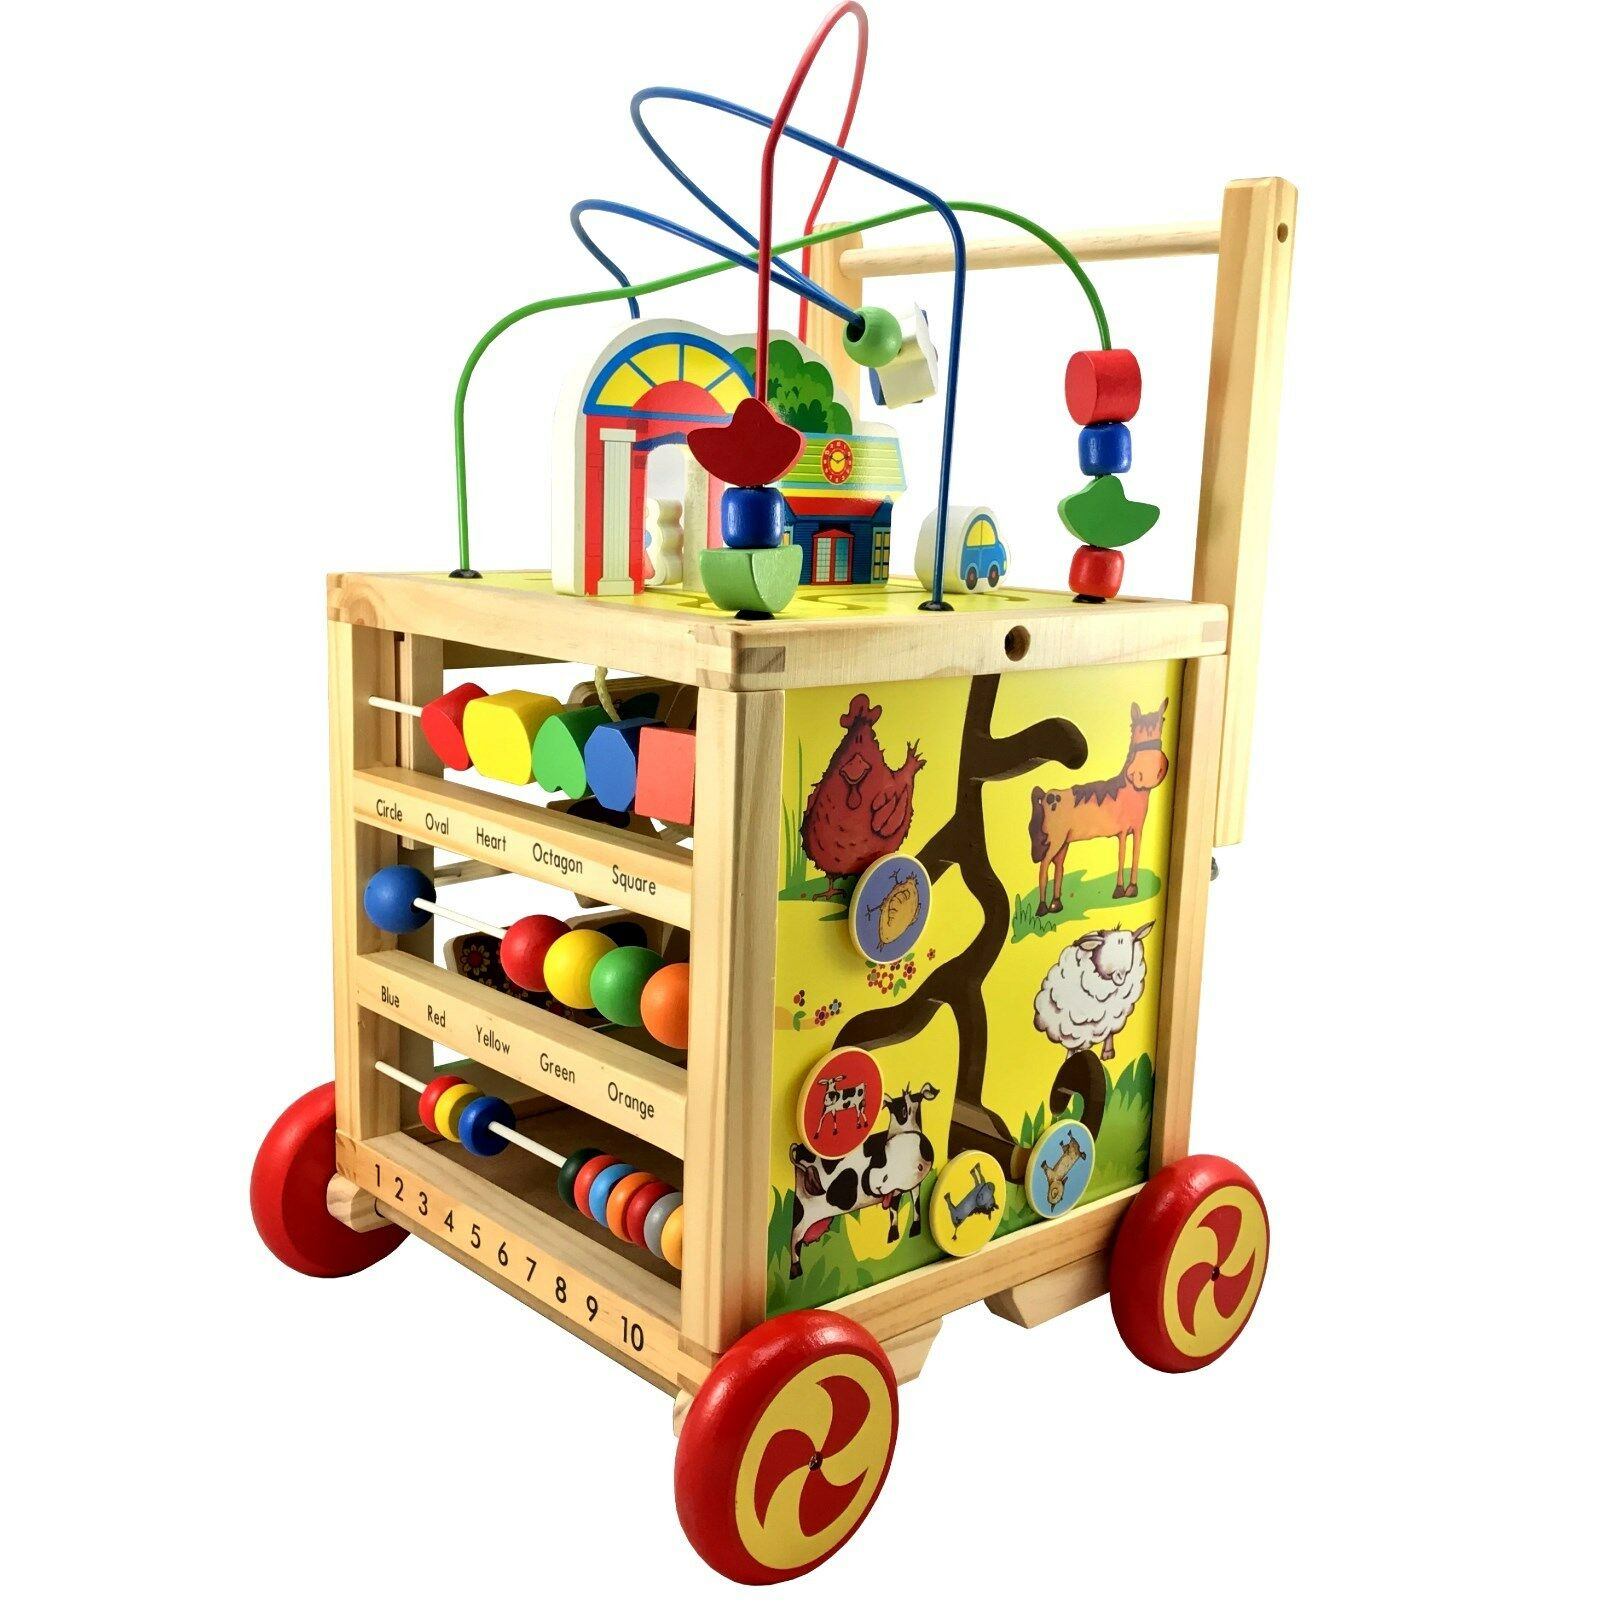 Motor Cube Motor Motor Motor Skills Toy of Wood Baby Walker First Walker Walkers Center 956179